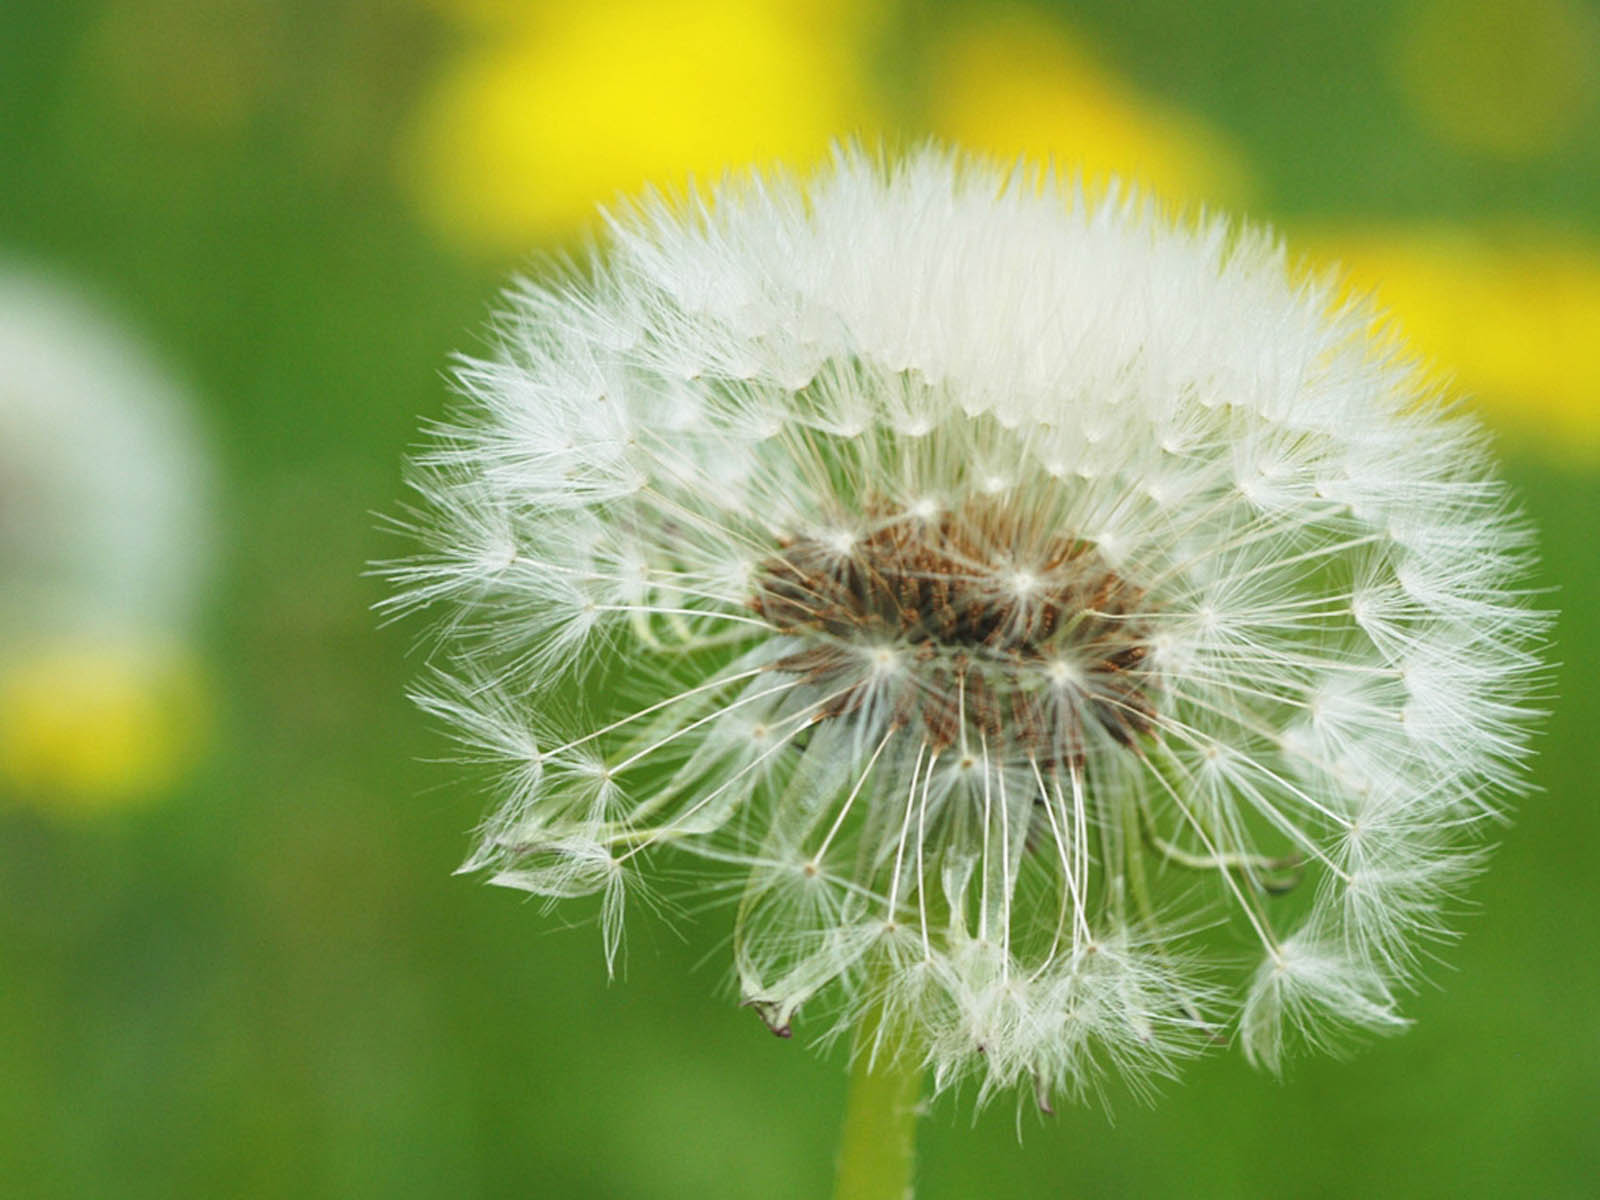 Tag Dandelion Flowers Wallpapers BackgroundsPhotos Images and 1600x1200